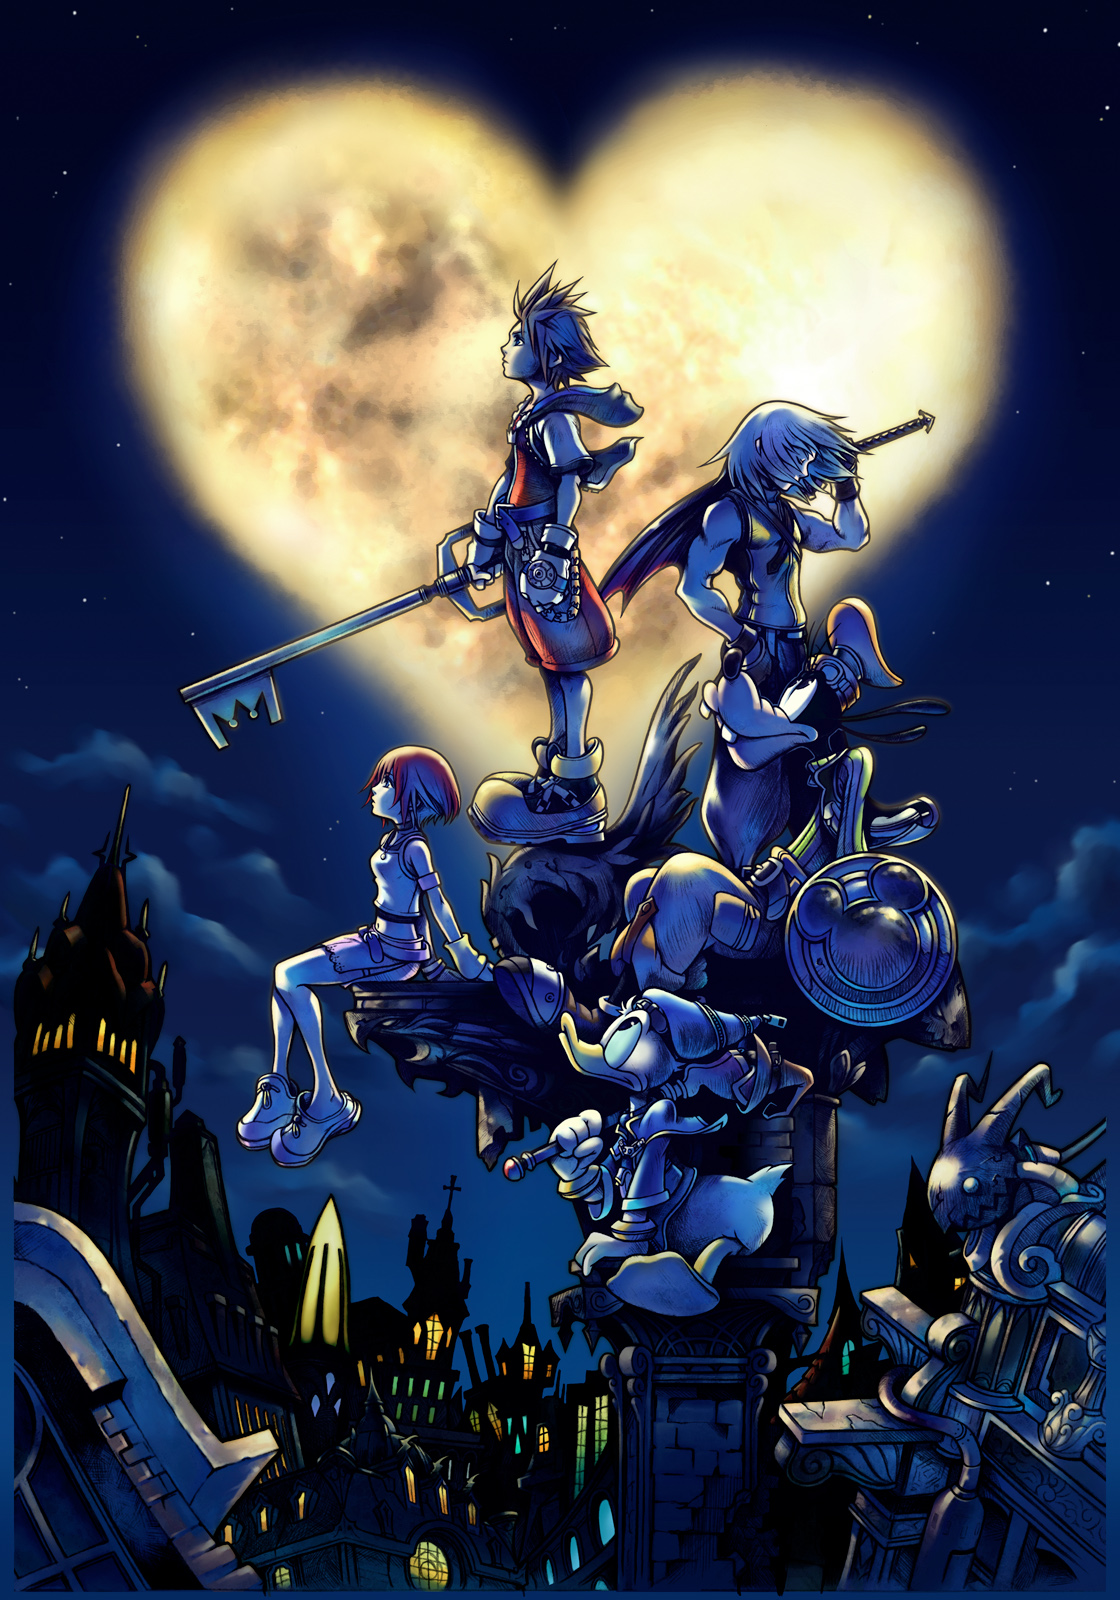 10 Game Anime Anime Polling  - Kingdom Hearts